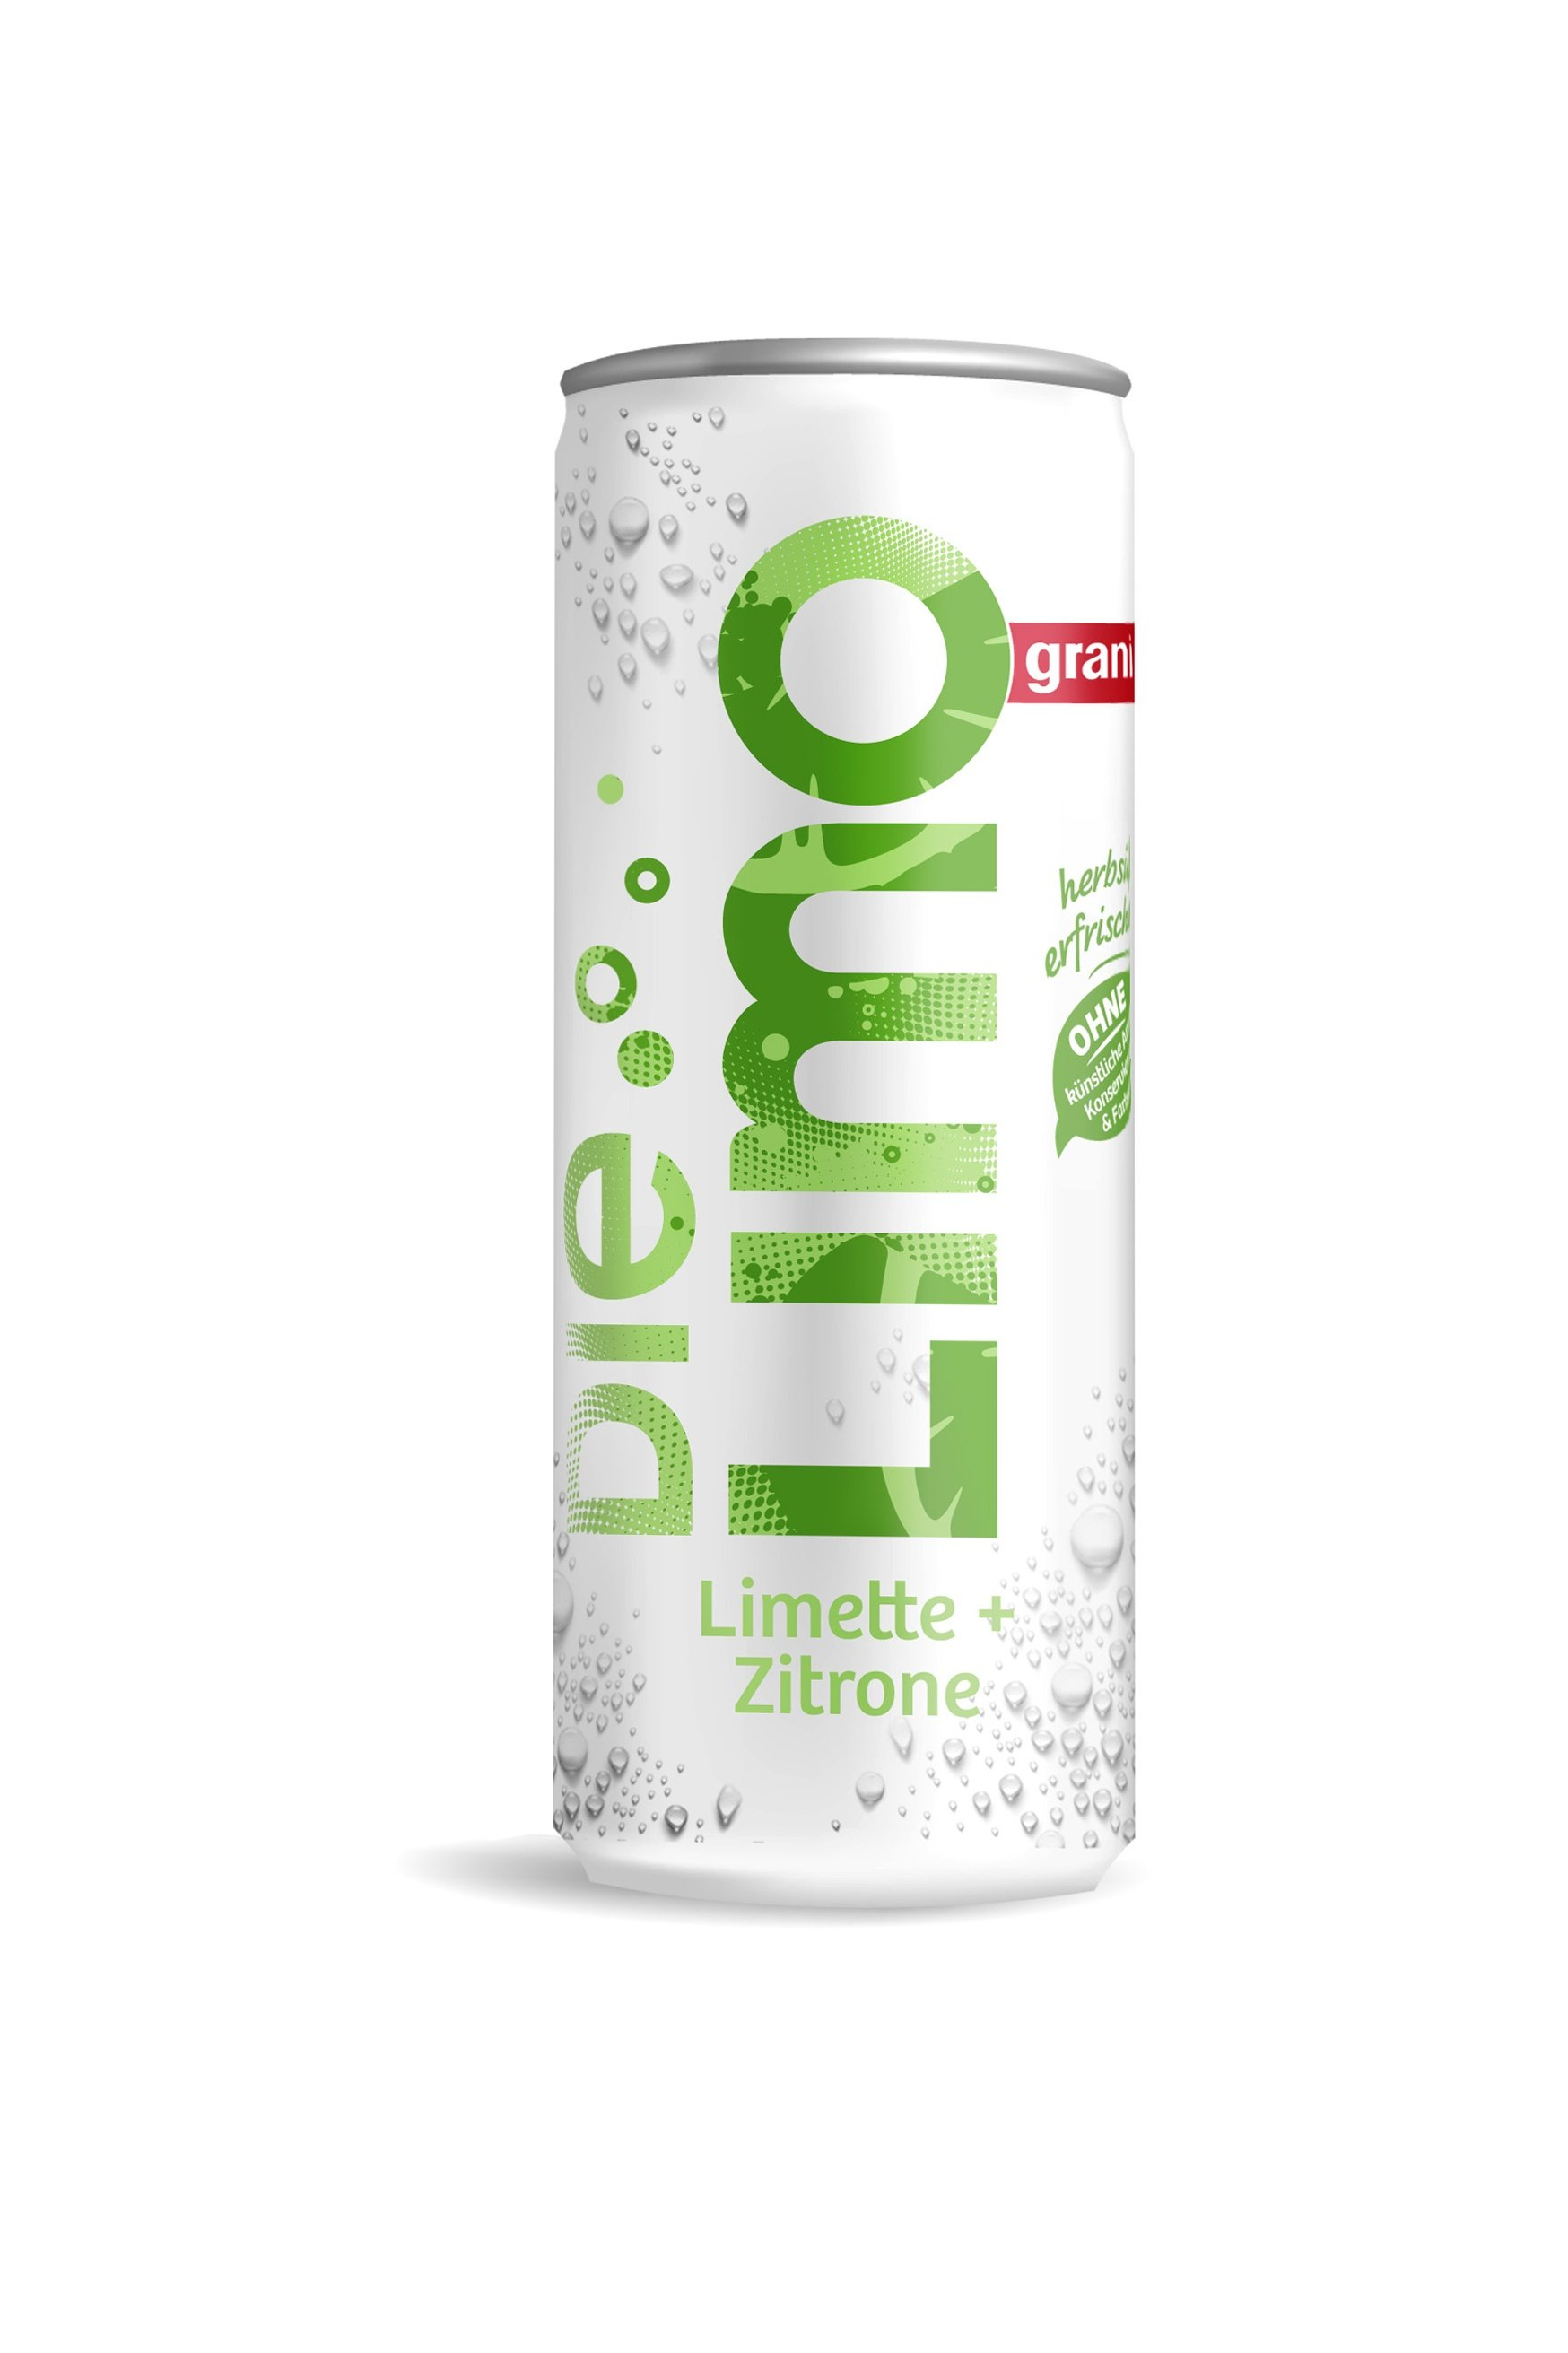 Die Limo Limette + Zitrone